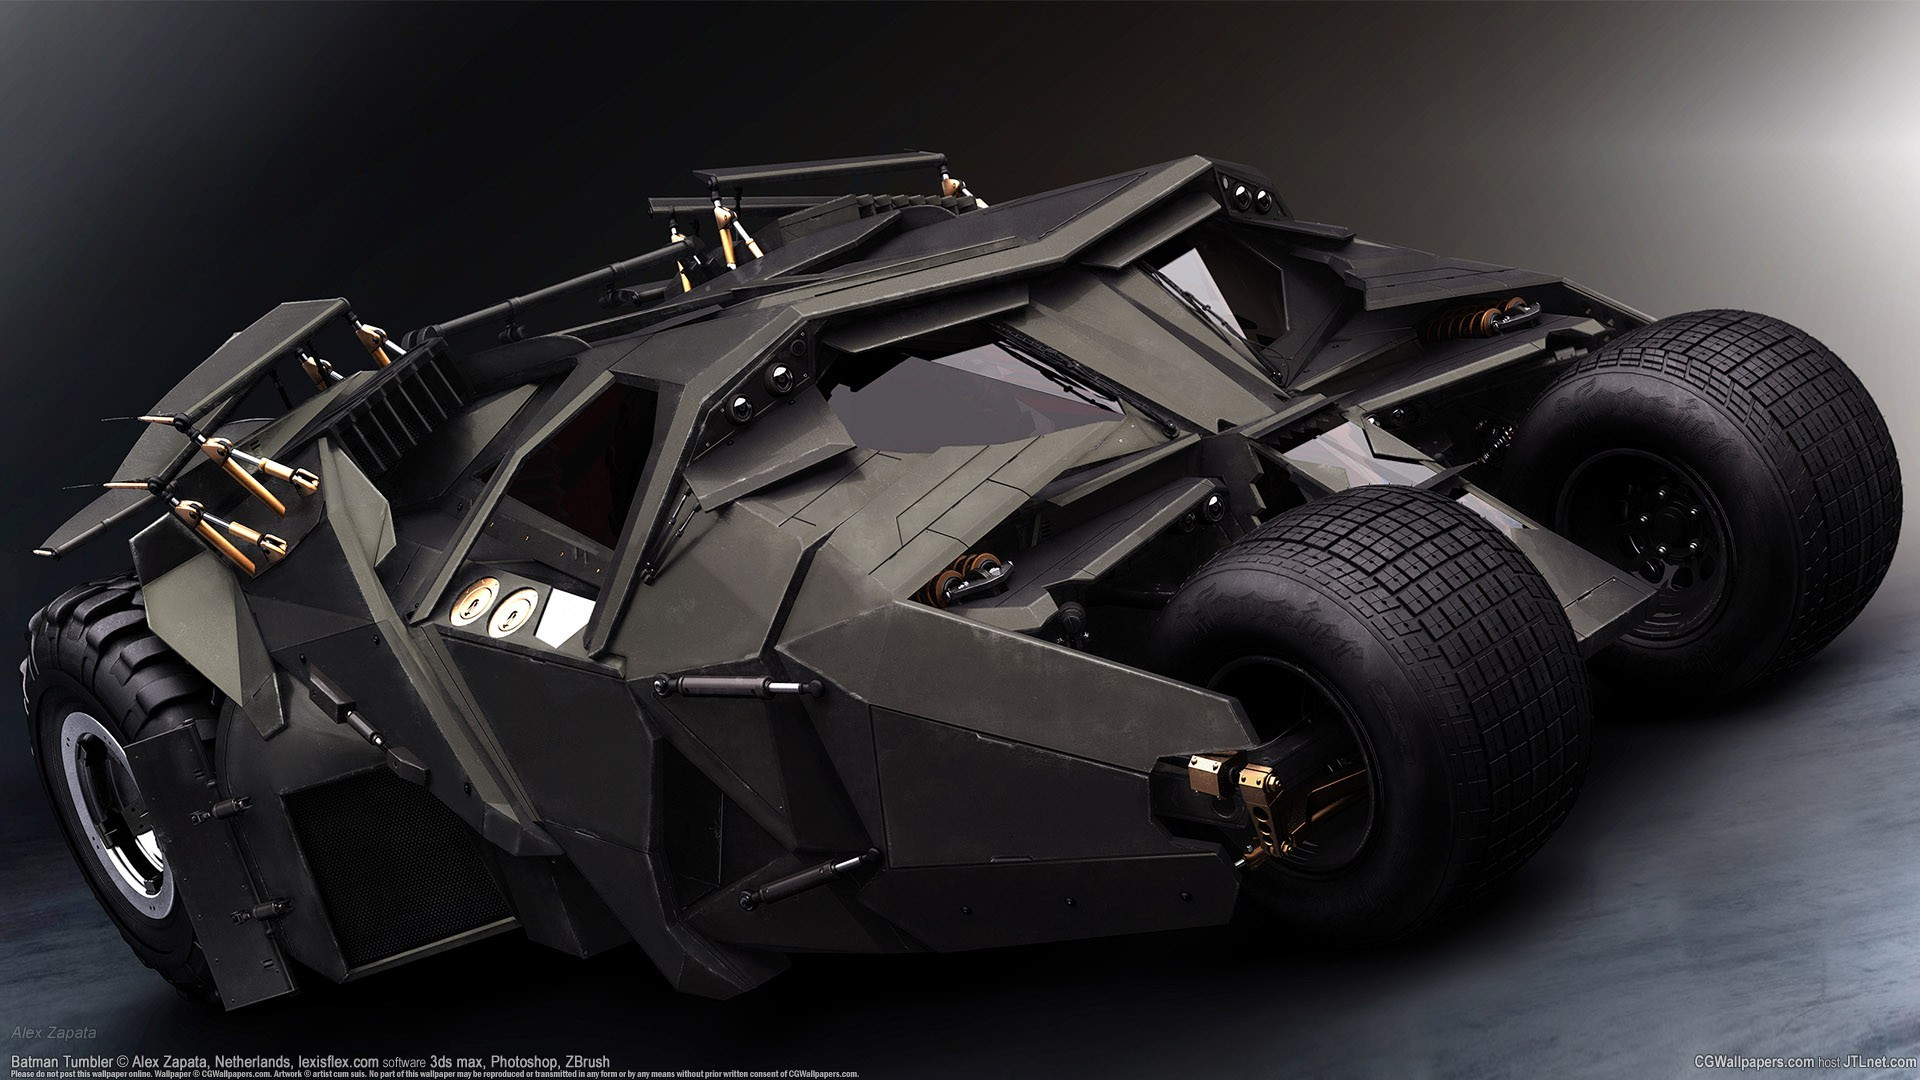 Batmobile-tumbler-wallpaper-wp3402905